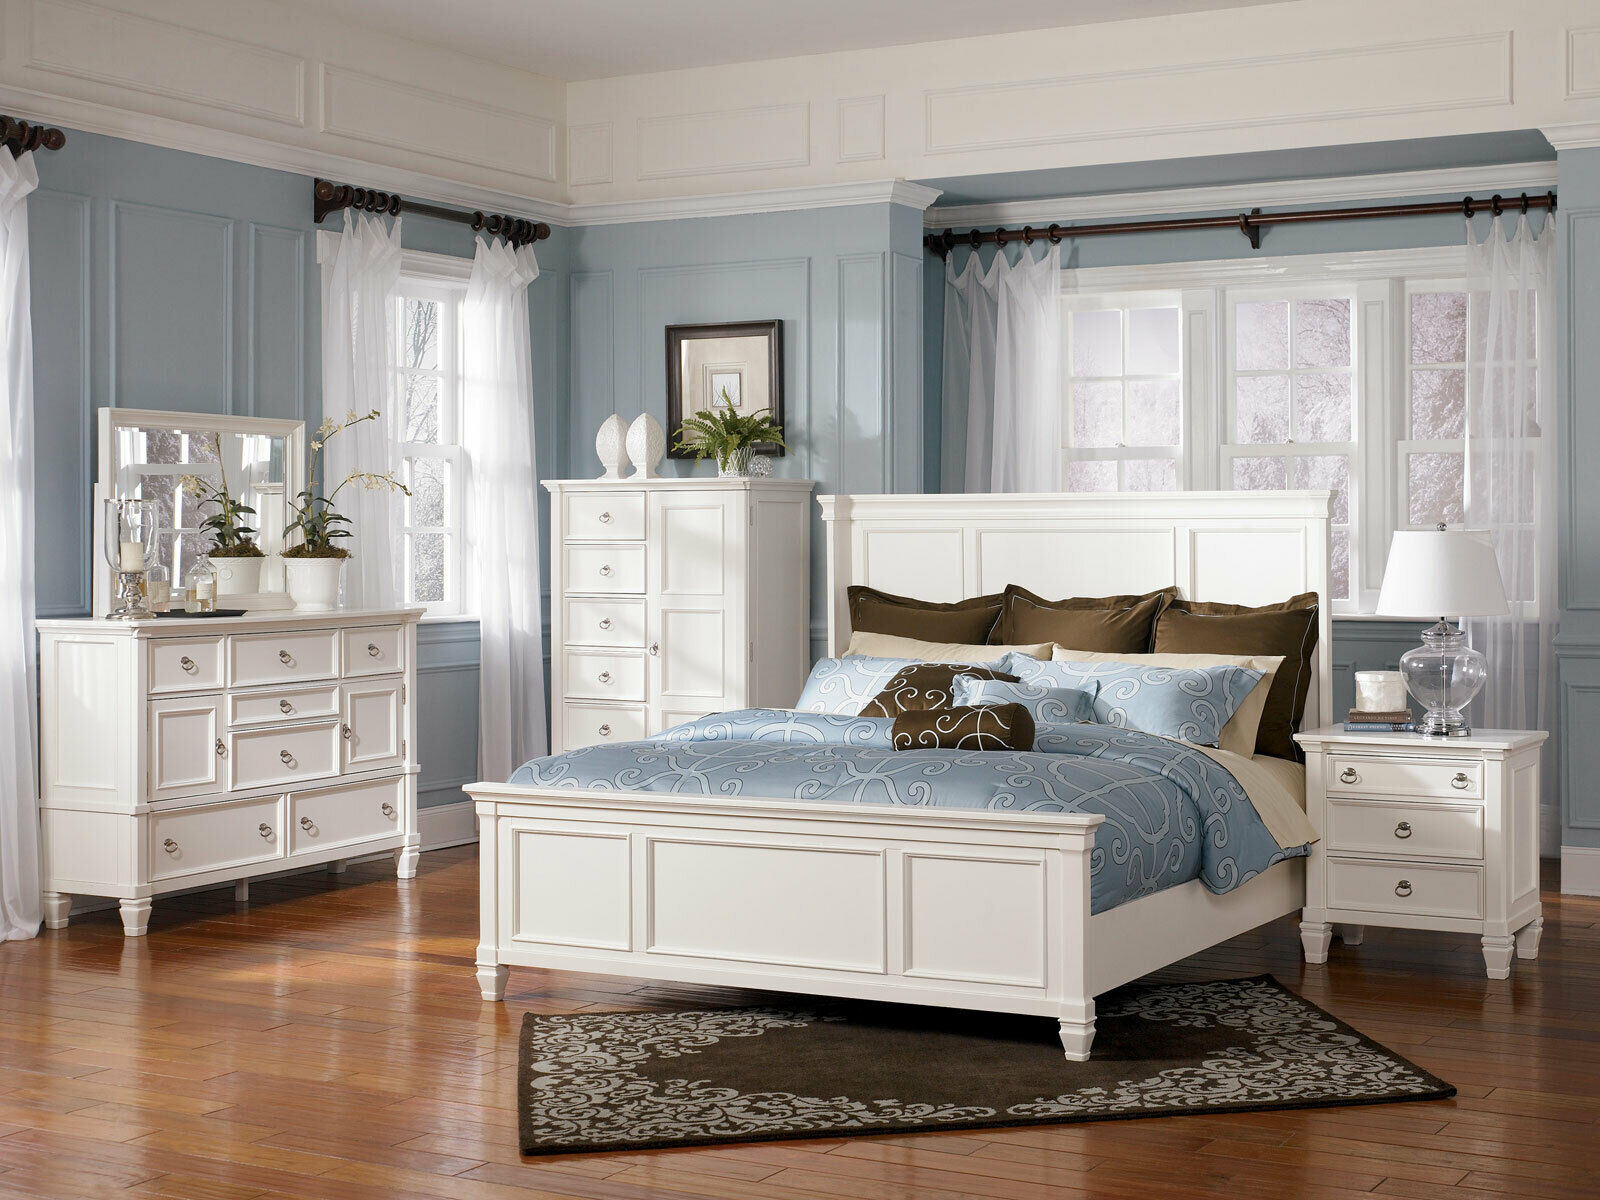 Traditional White 5 Piece Bedroom King Bed Dresser Mirror Nightstands Set Ia2g For Sale Online